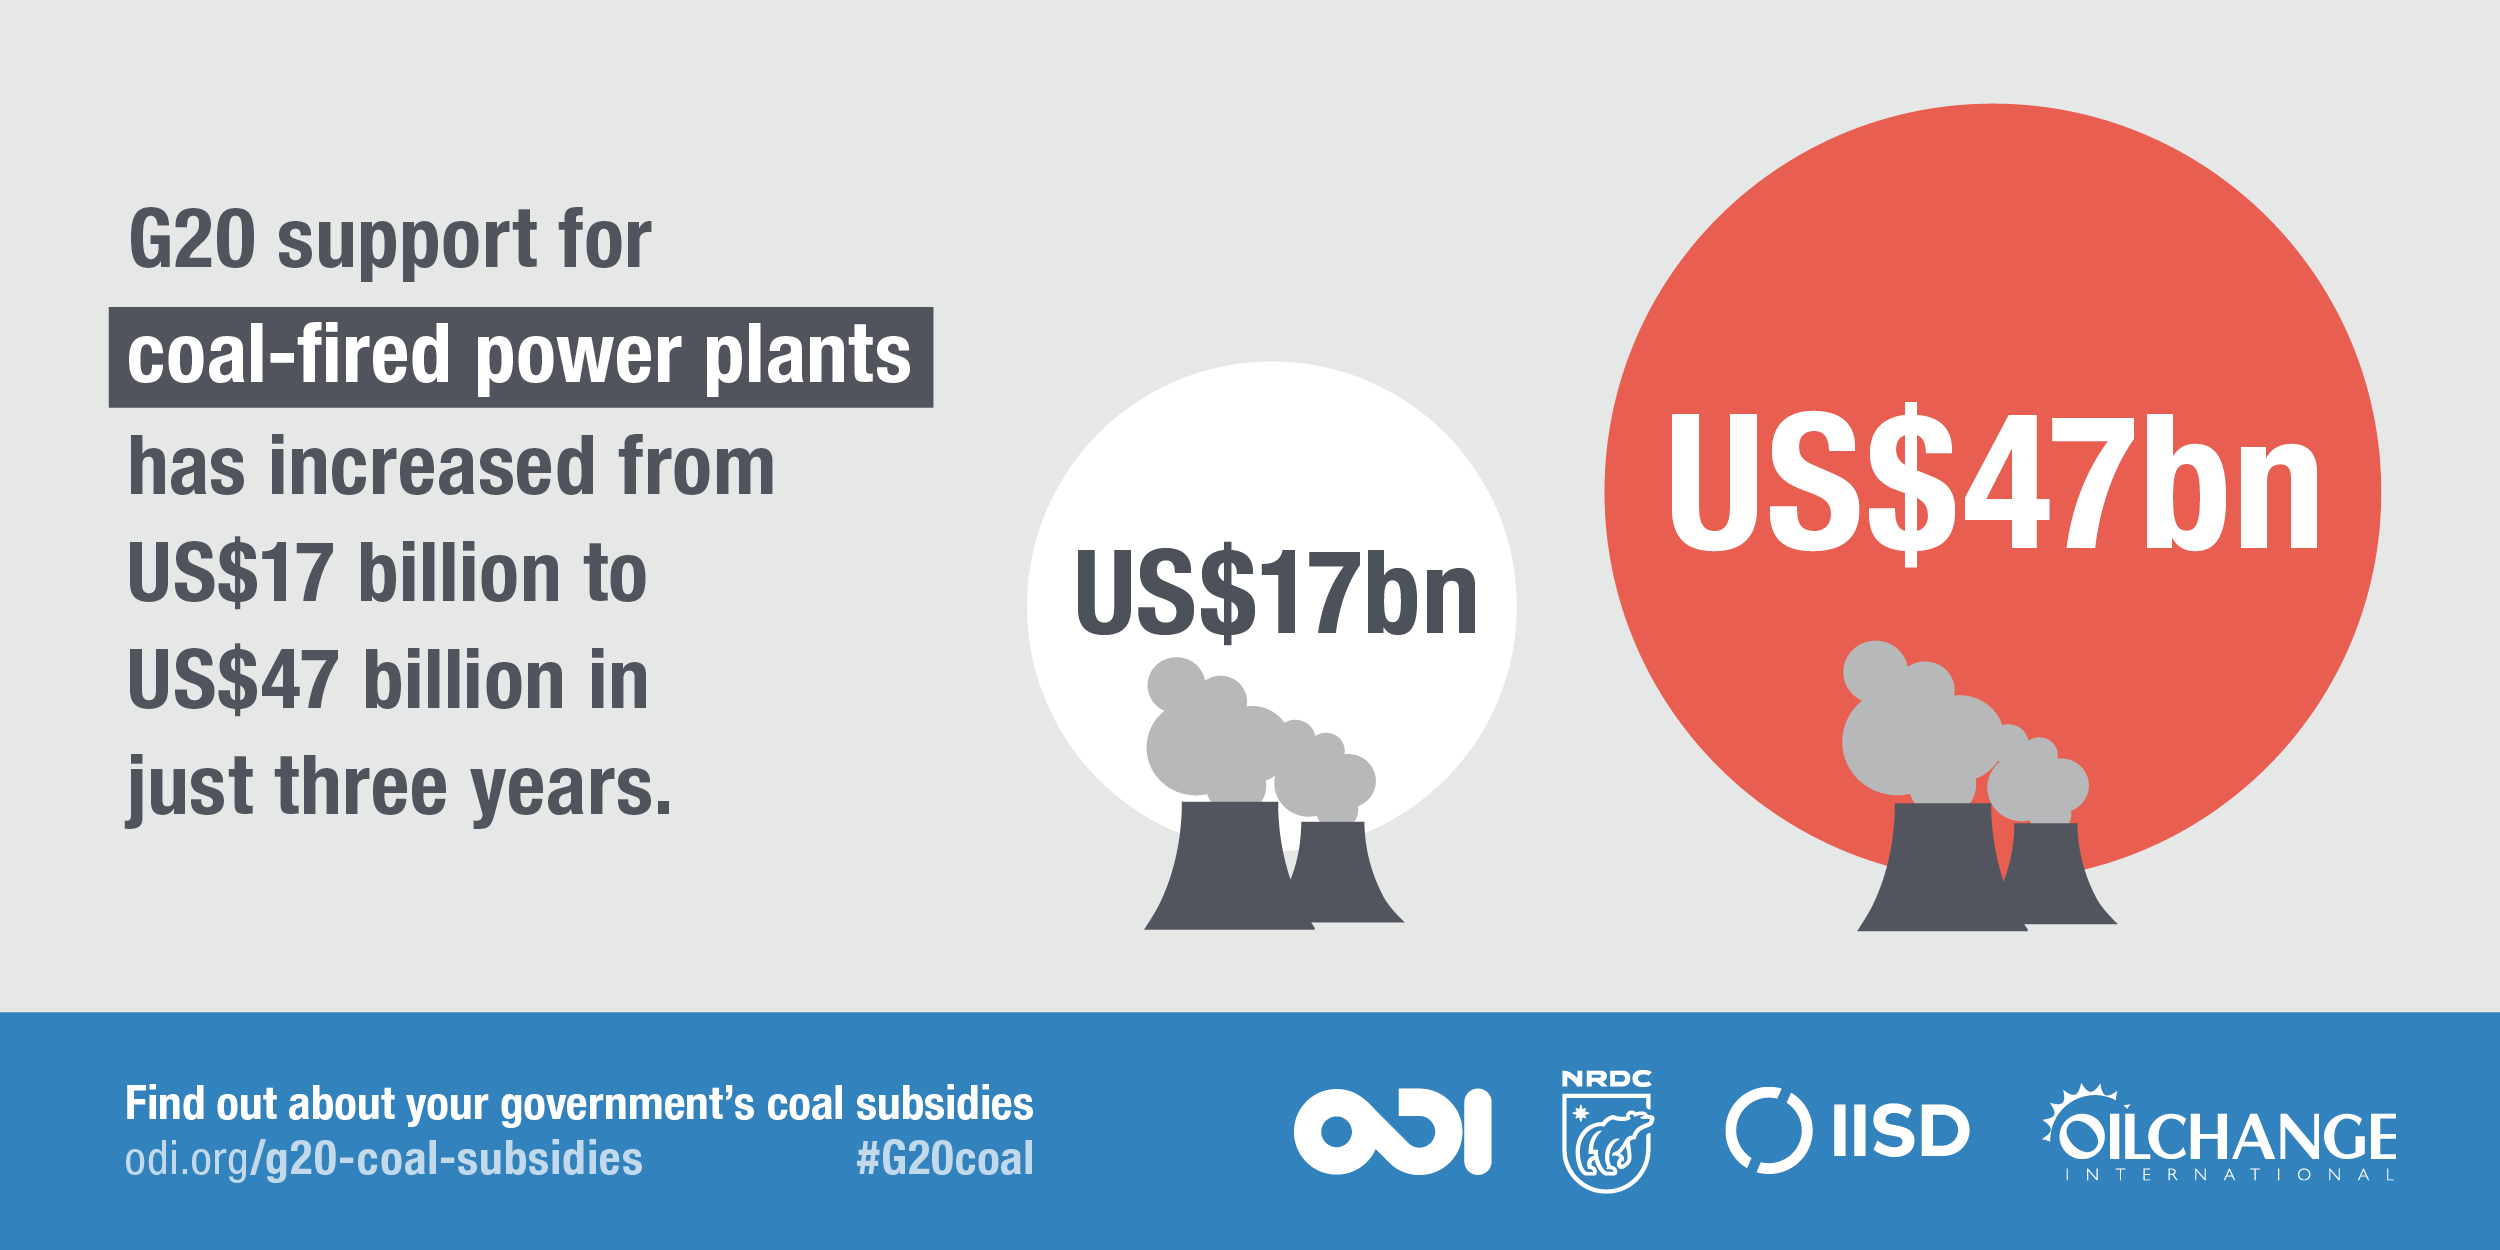 G20 support for coal-fired power plants has increased from US$17 billion to US$47 billion in just three years. Image: ODI